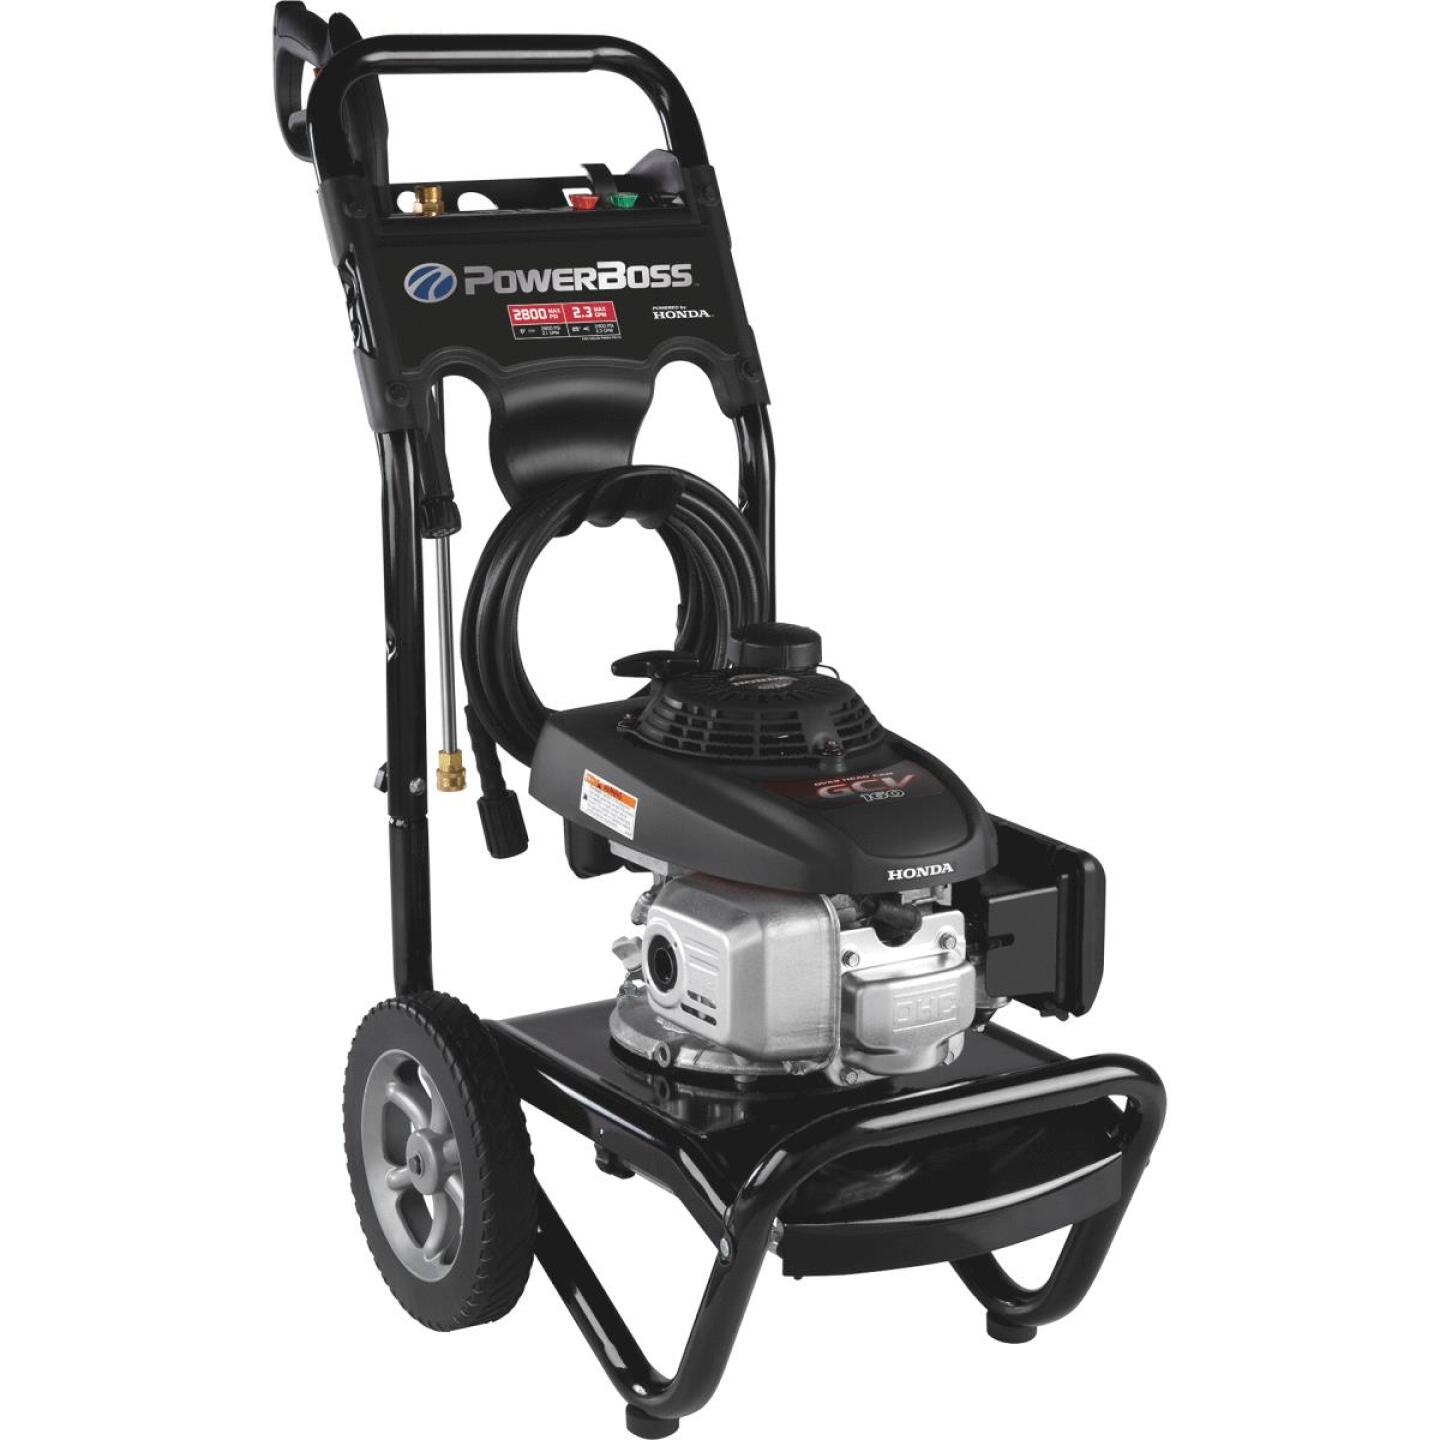 PowerBoss 2800 psi 2.3 GPM Cold Water Gas Pressure Washer Image 1